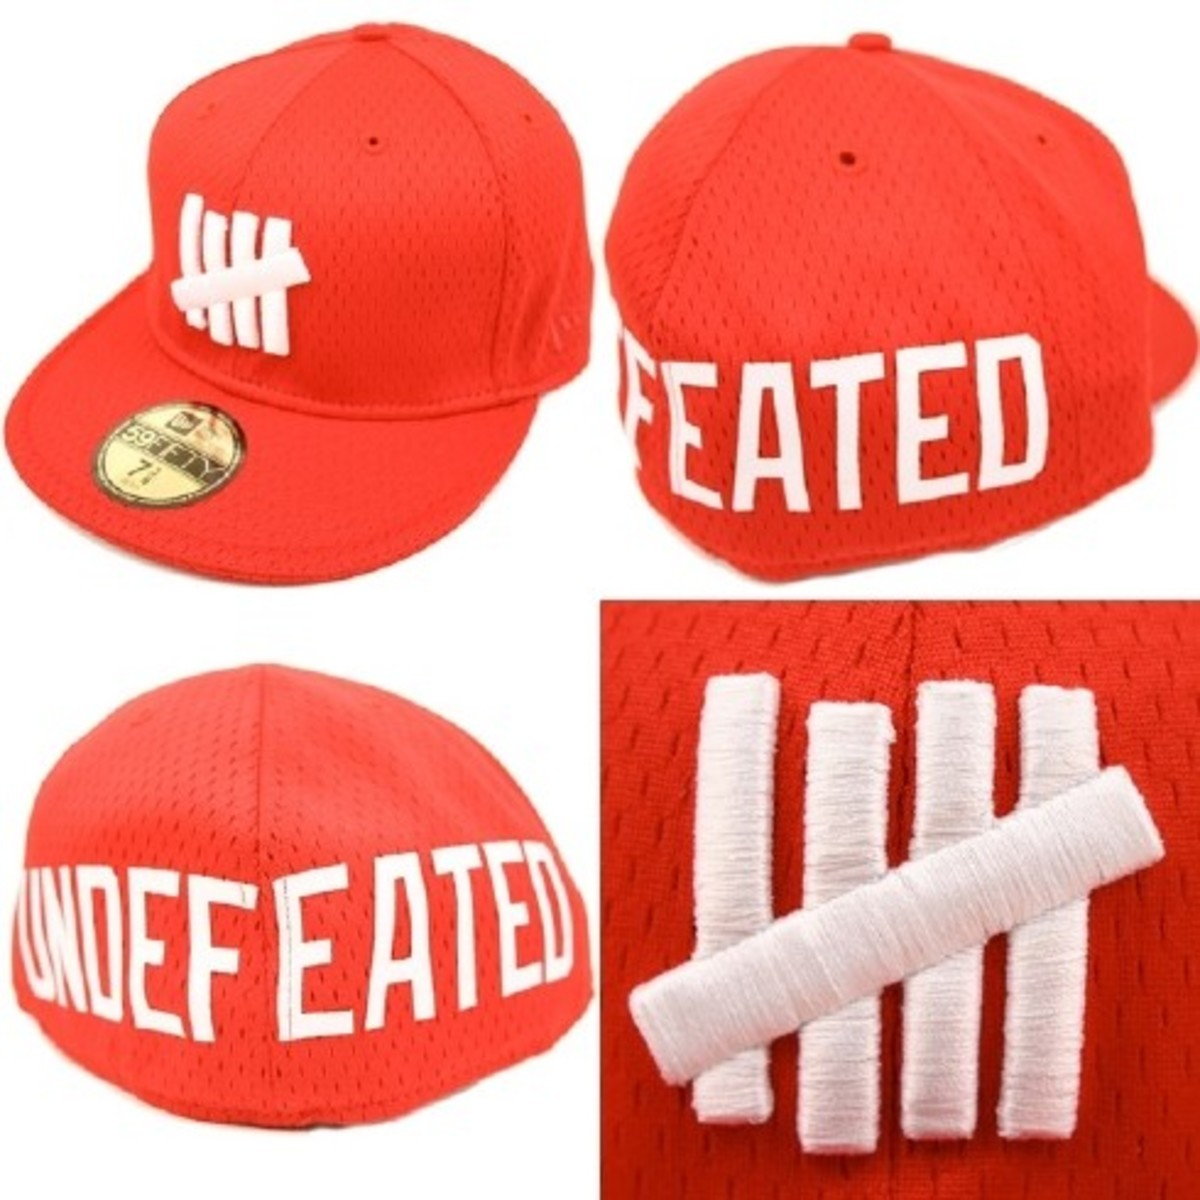 UNDFTD - Fall 2008 Collection - New Era Fitteds - 3